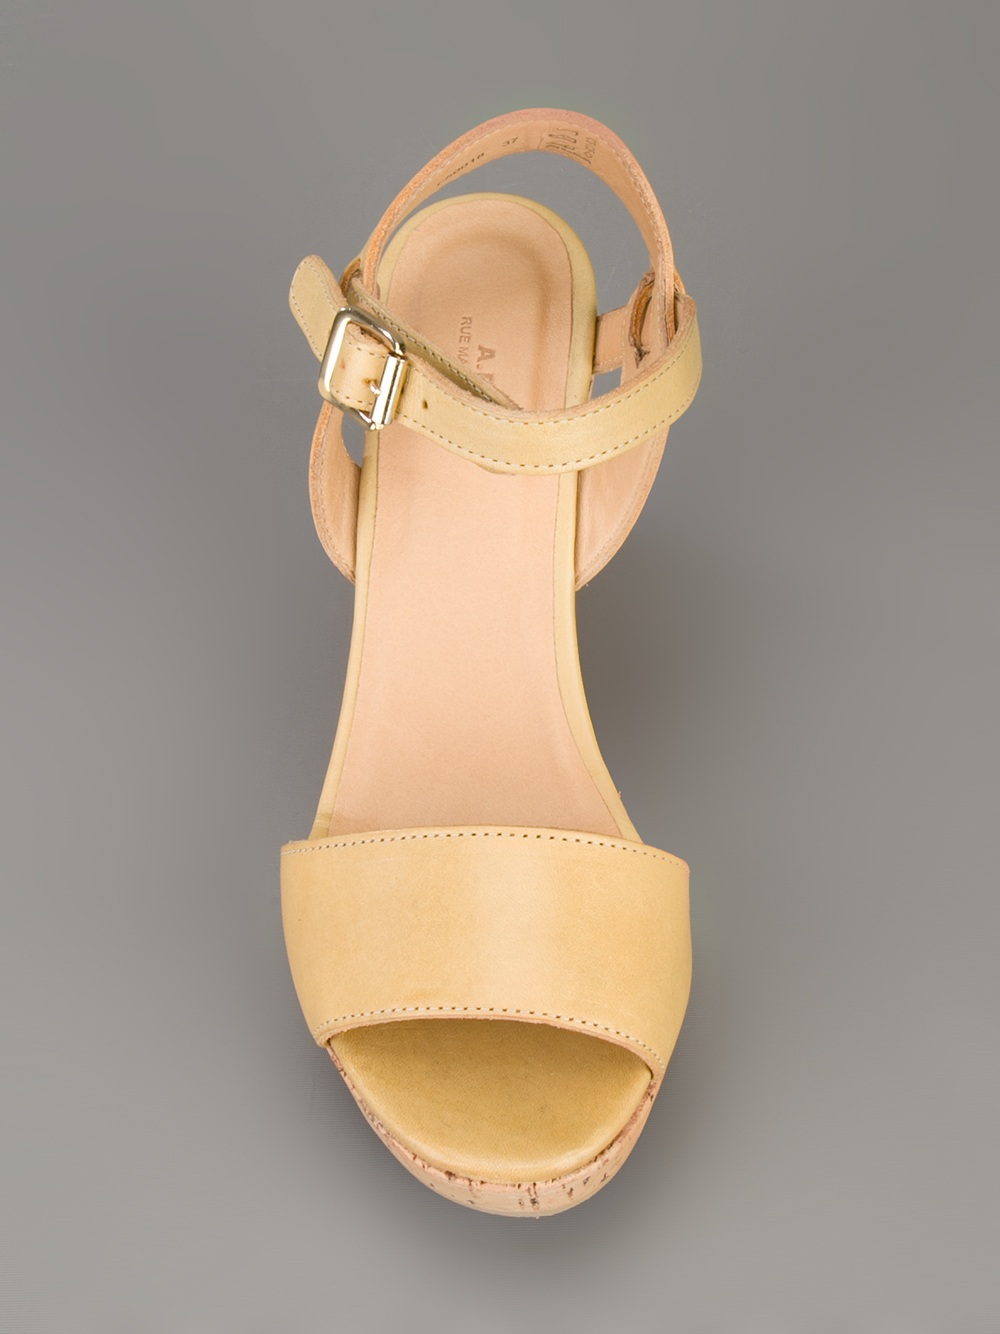 A P C Wedge Sandal In Yellow Mustard Lyst